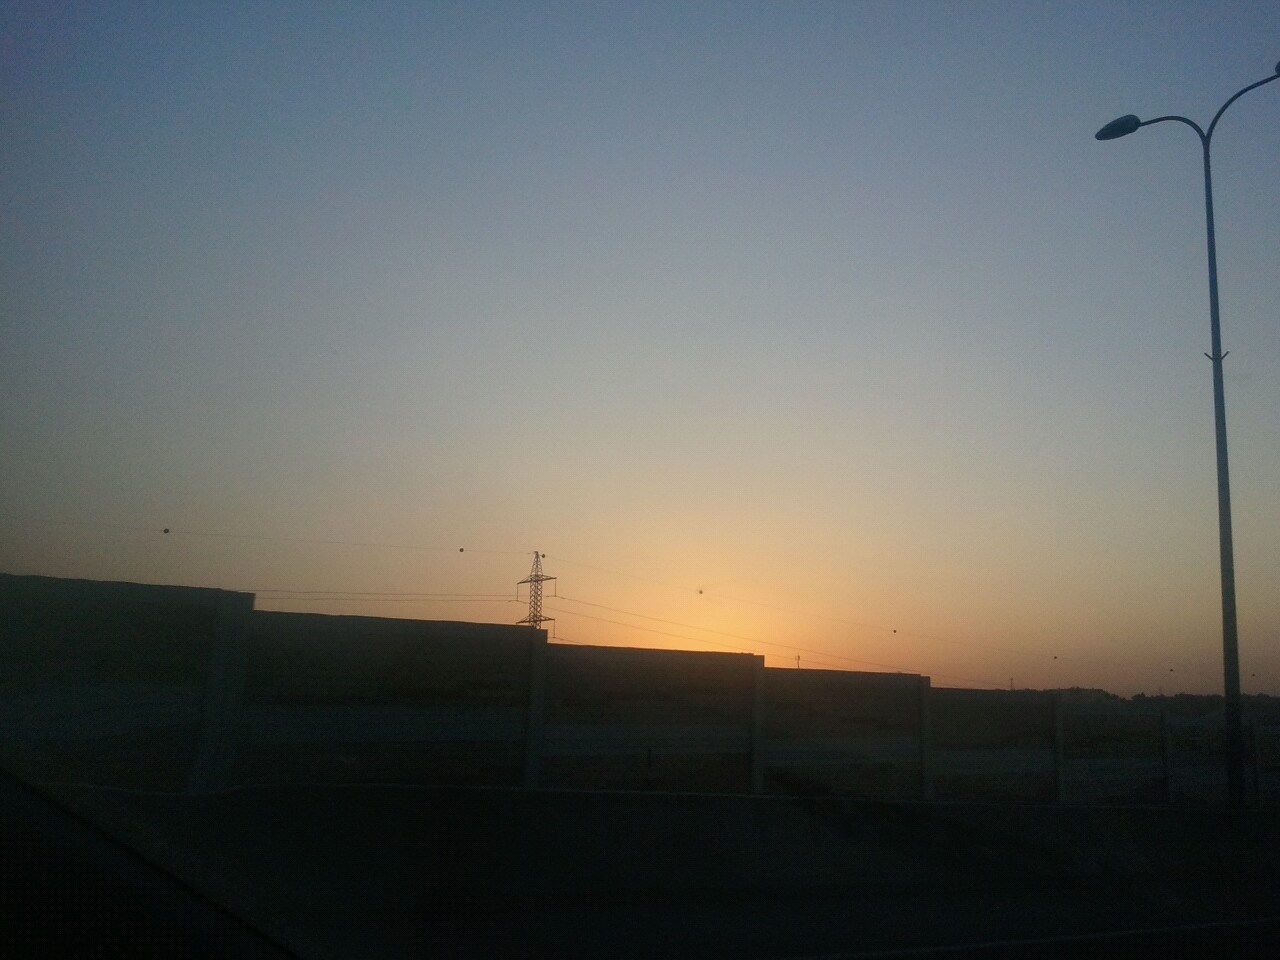 Sunset over the Israeli West Bank barrier